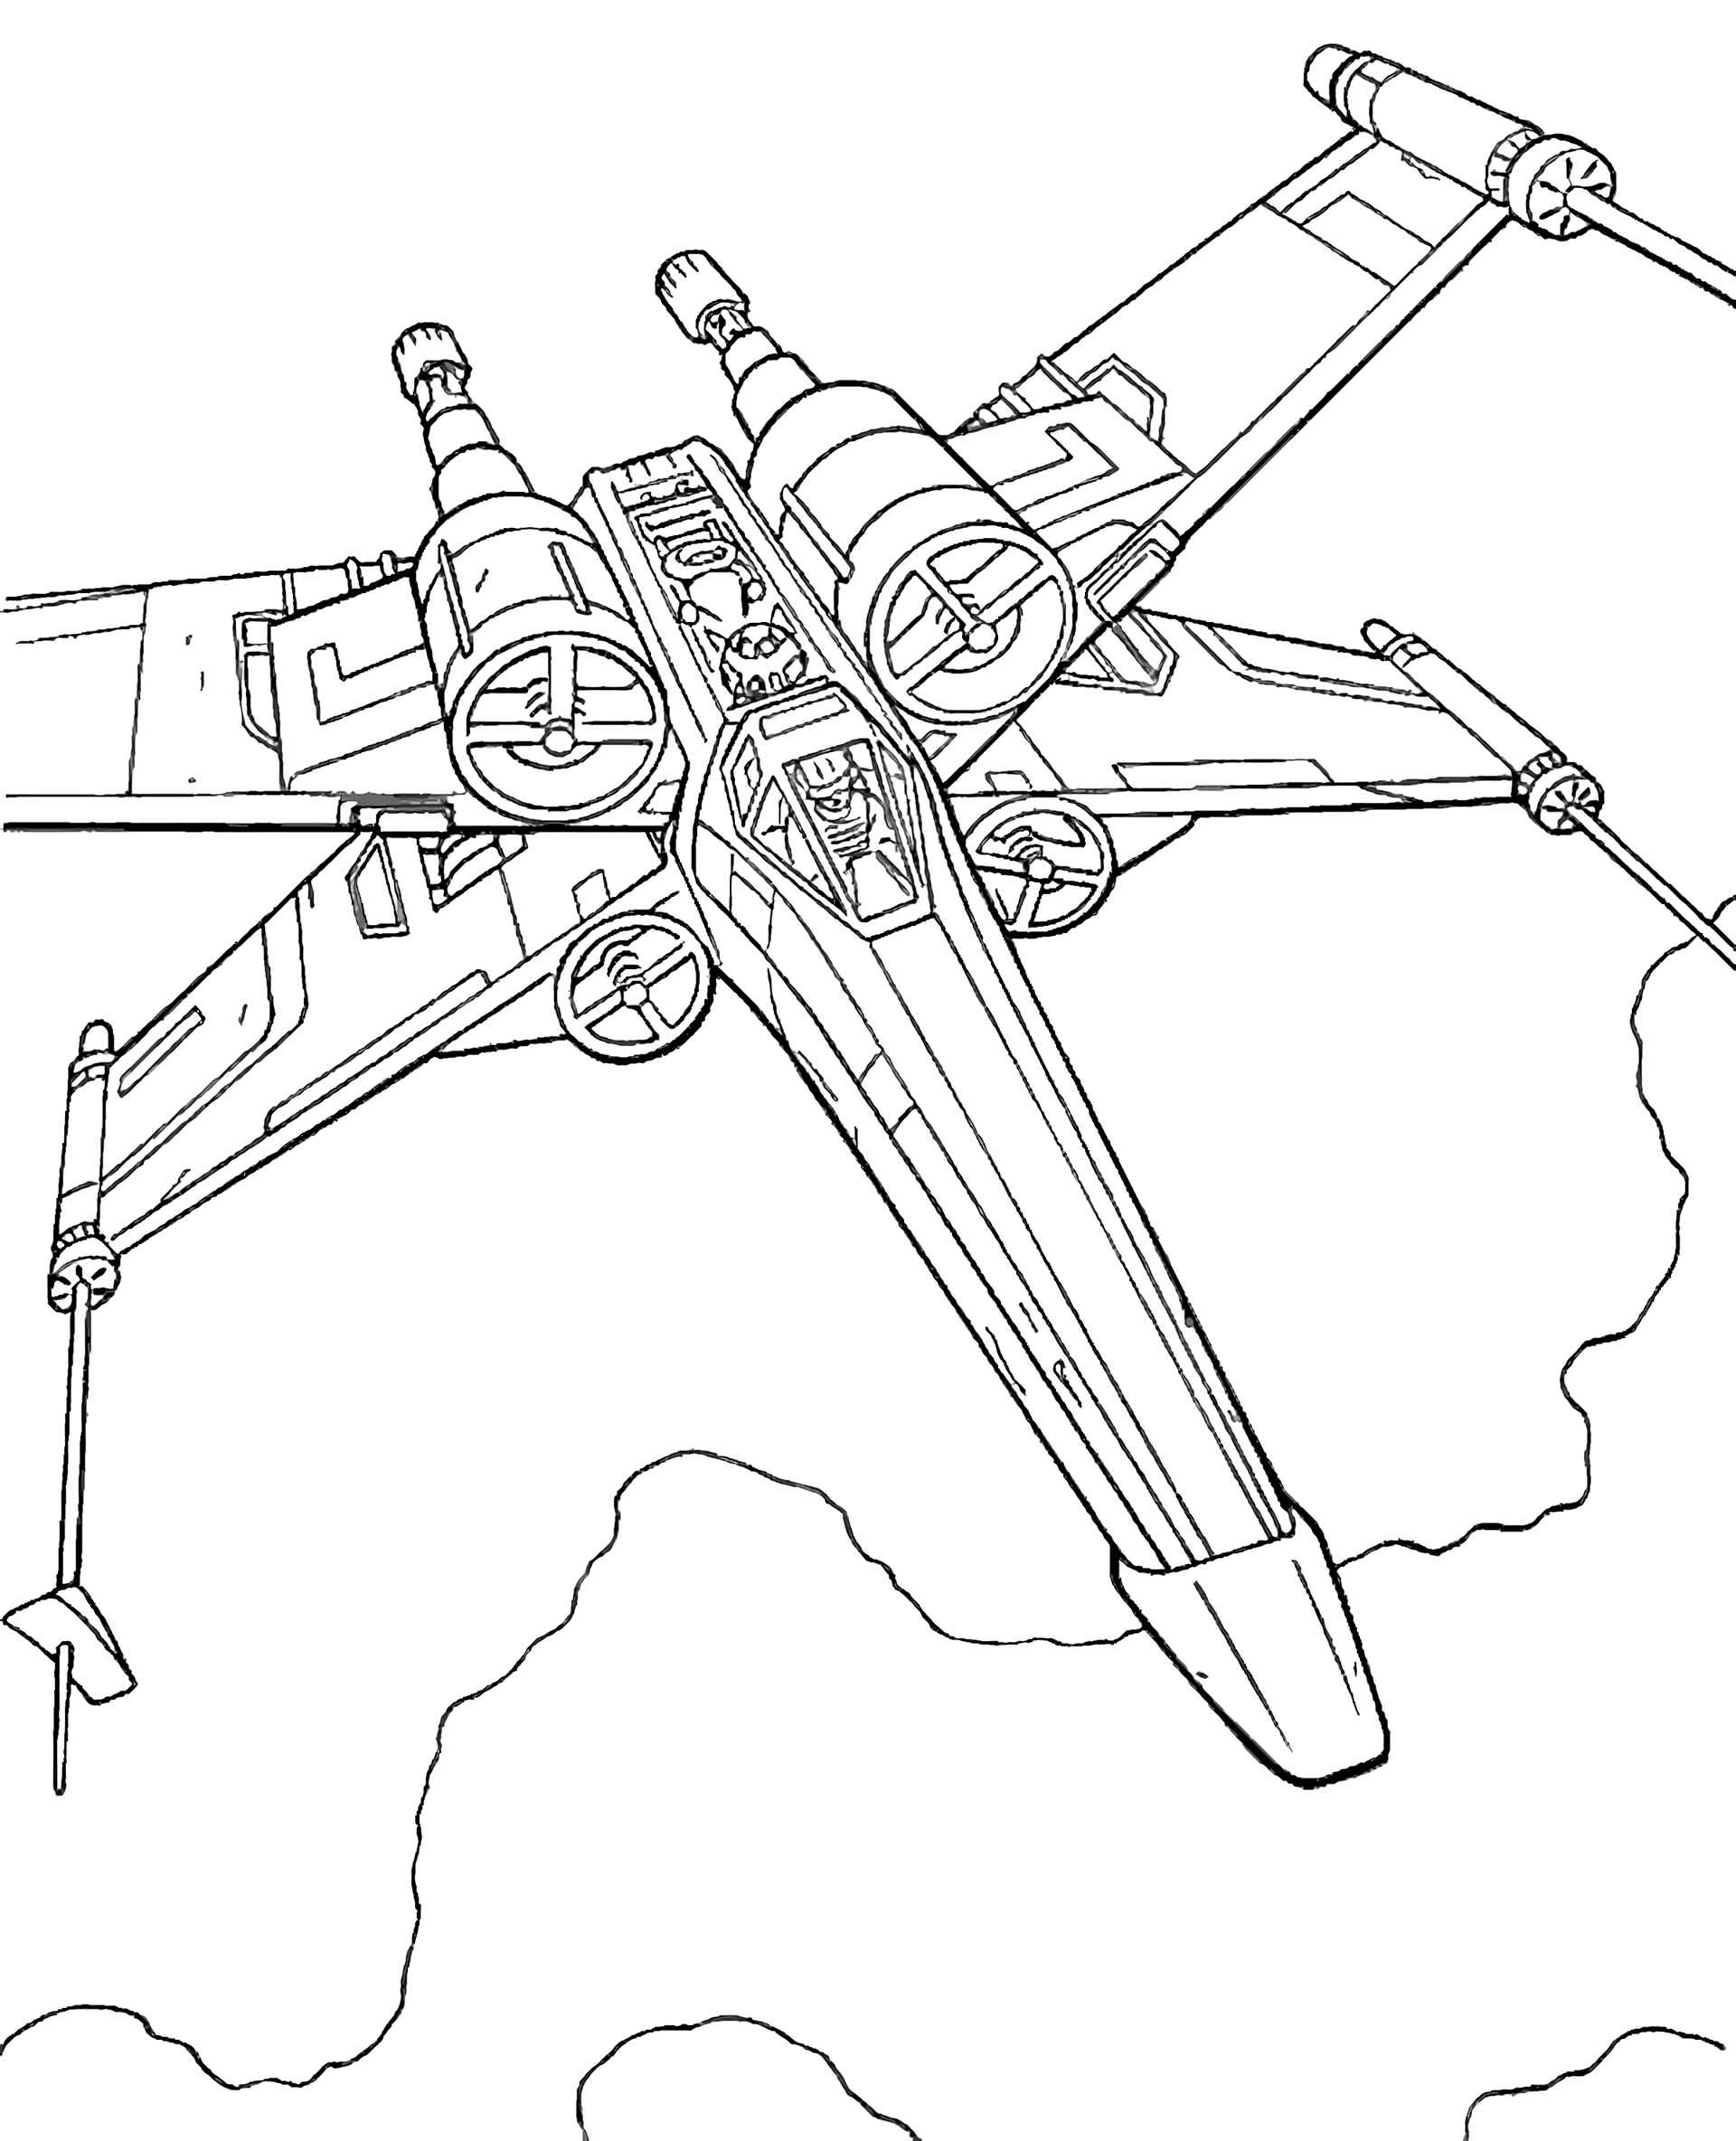 X Wing Spaceship From Star Wars Coloring Page